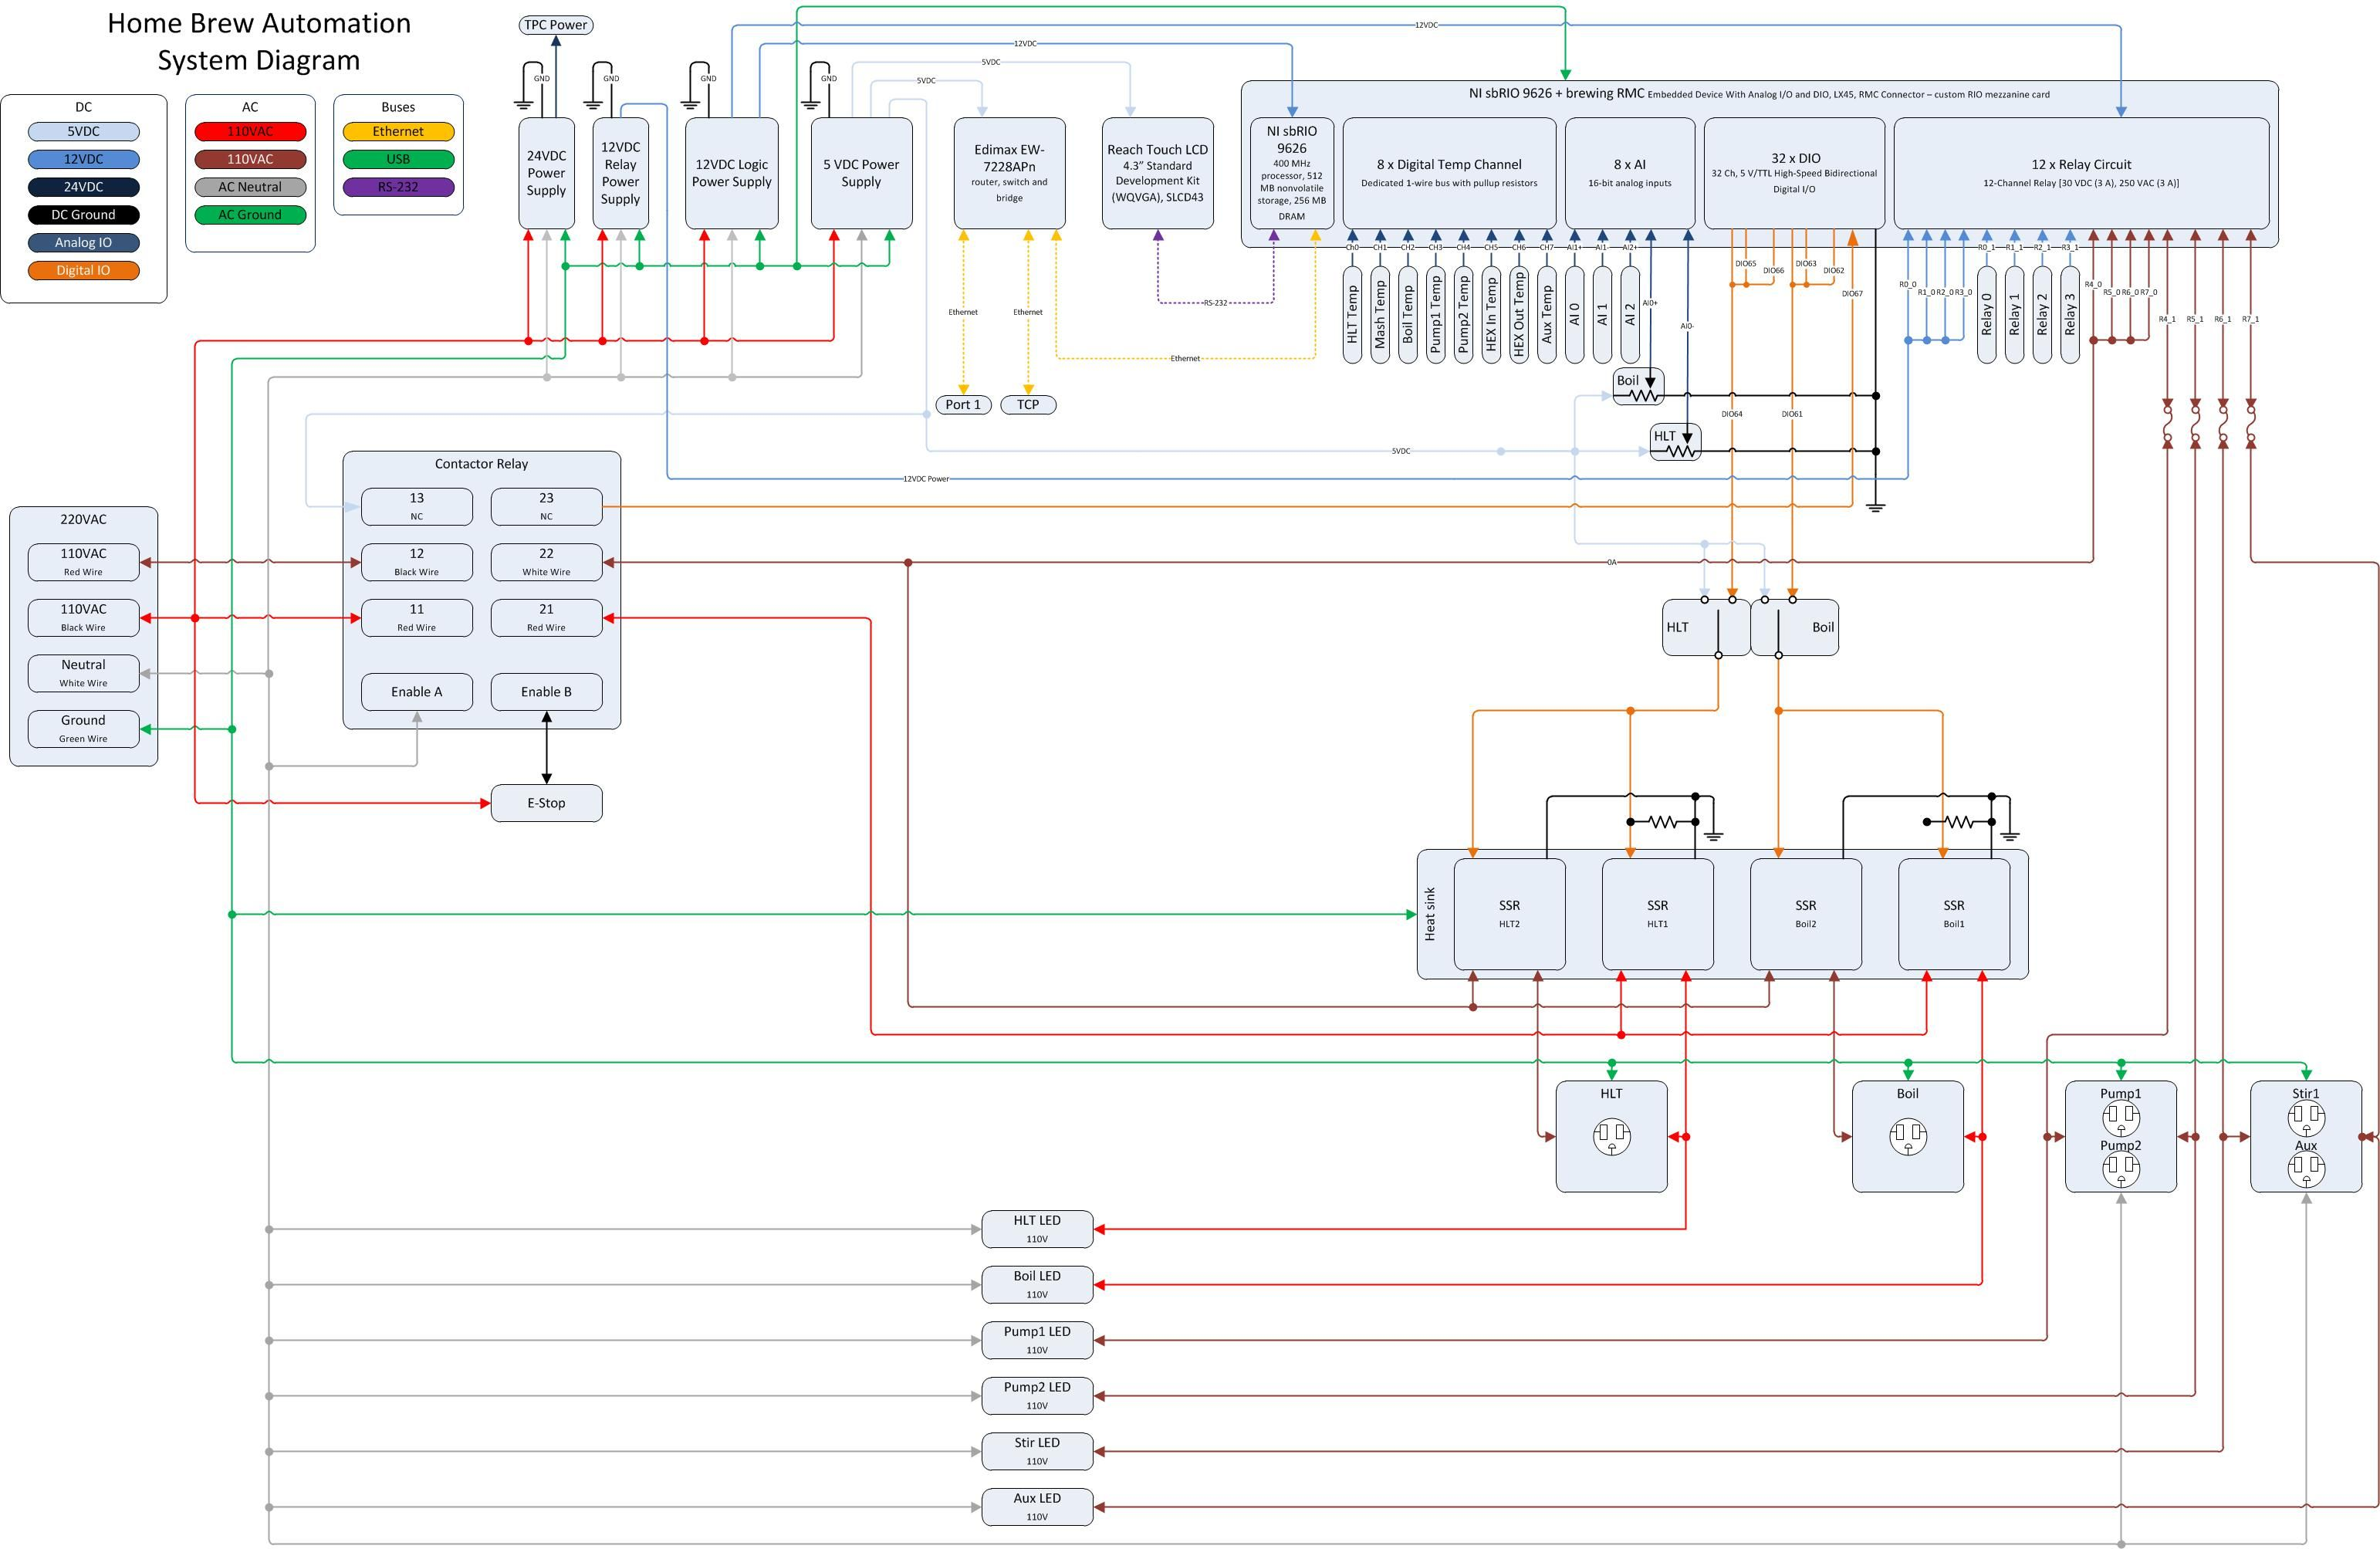 Home Brew Automation Parts And System Diagram New Brewery Jpg